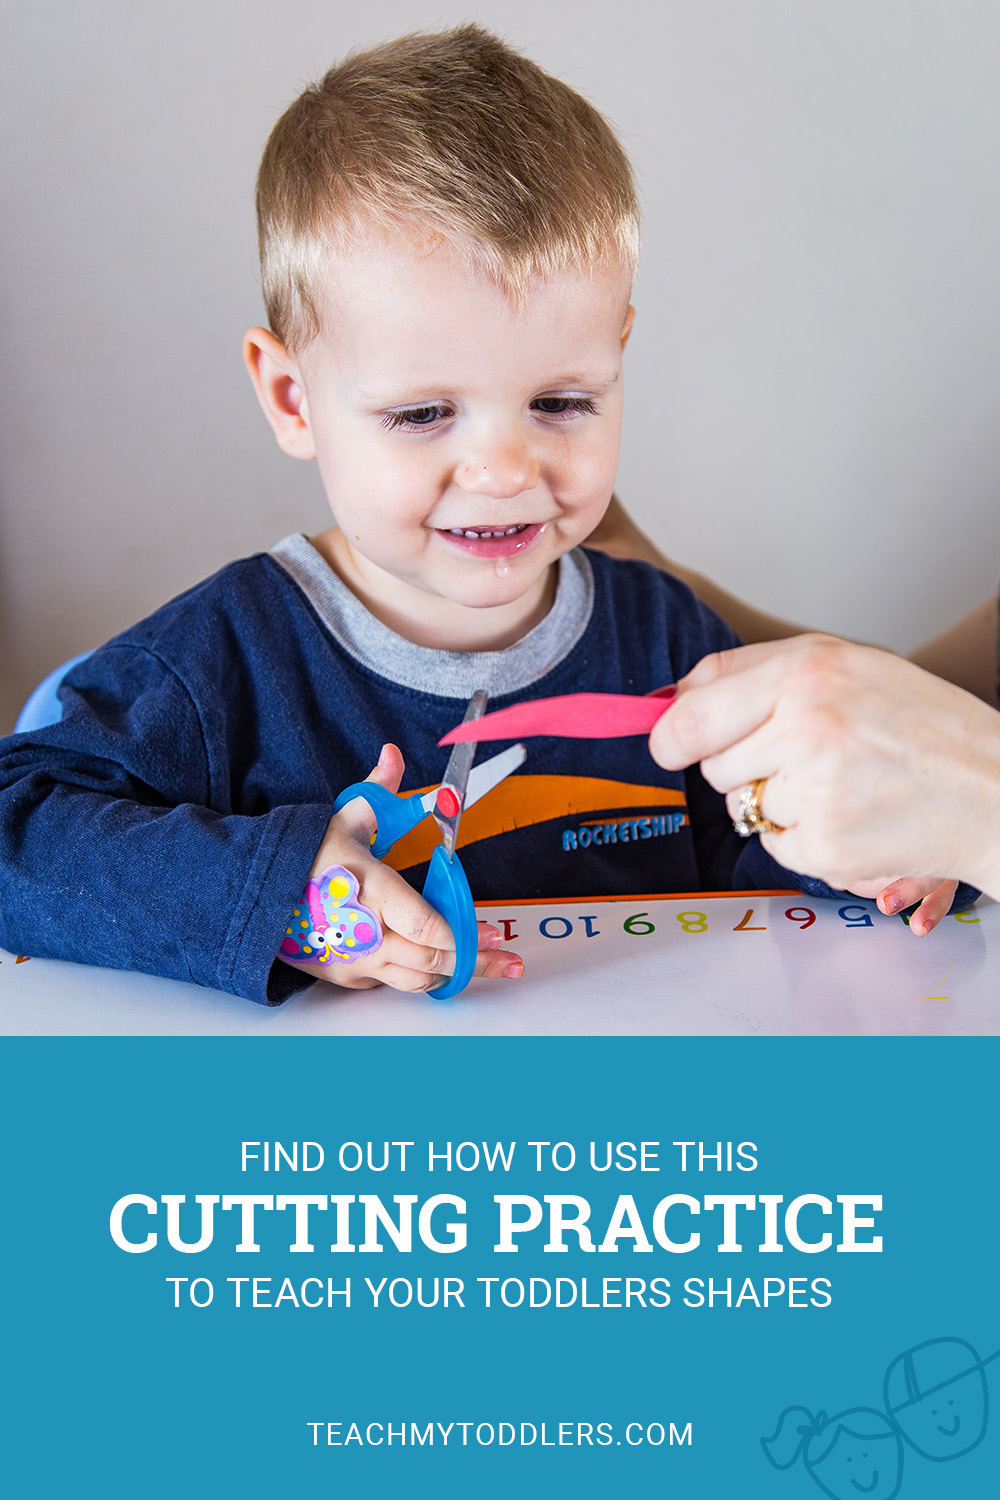 Find out how to use this cutting practice to teach your toddlers shapes